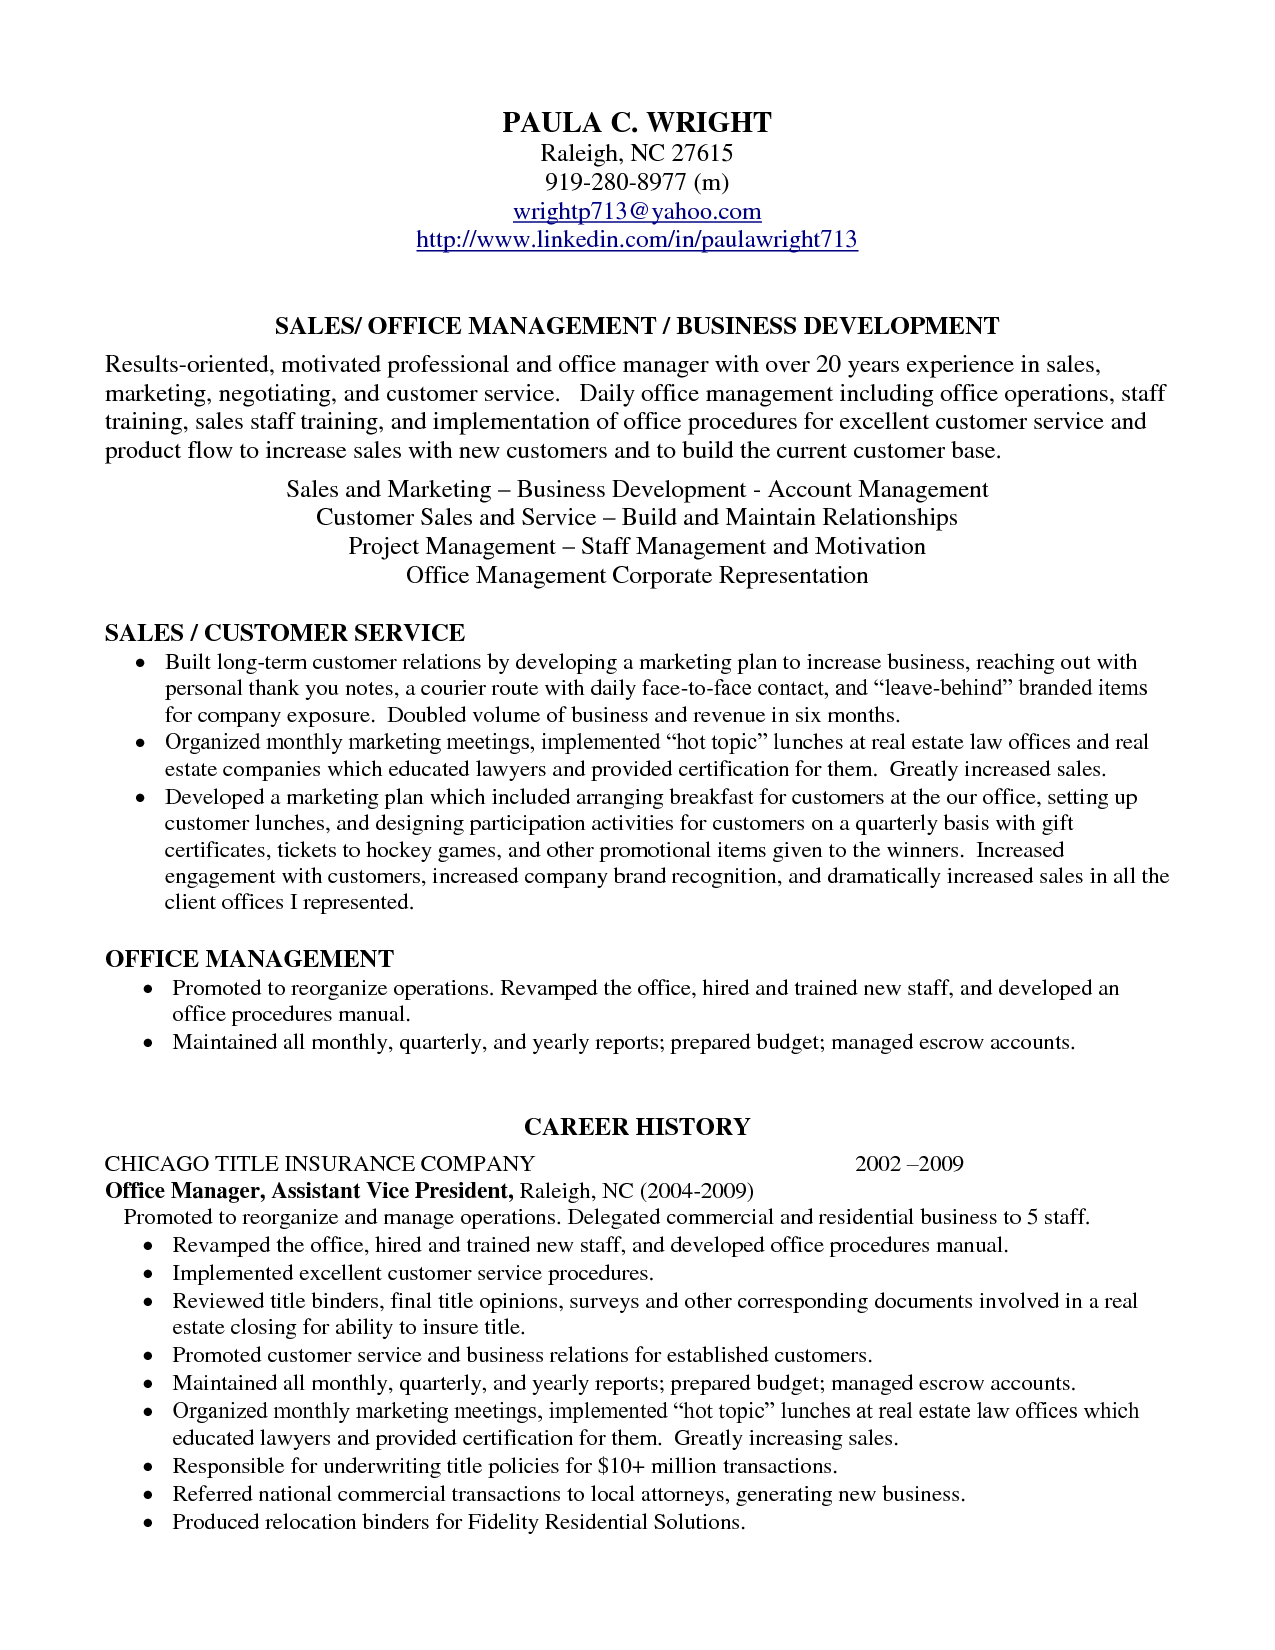 Barista Job Description Resume Professional Profile Resume Examplesresume Professional Profile